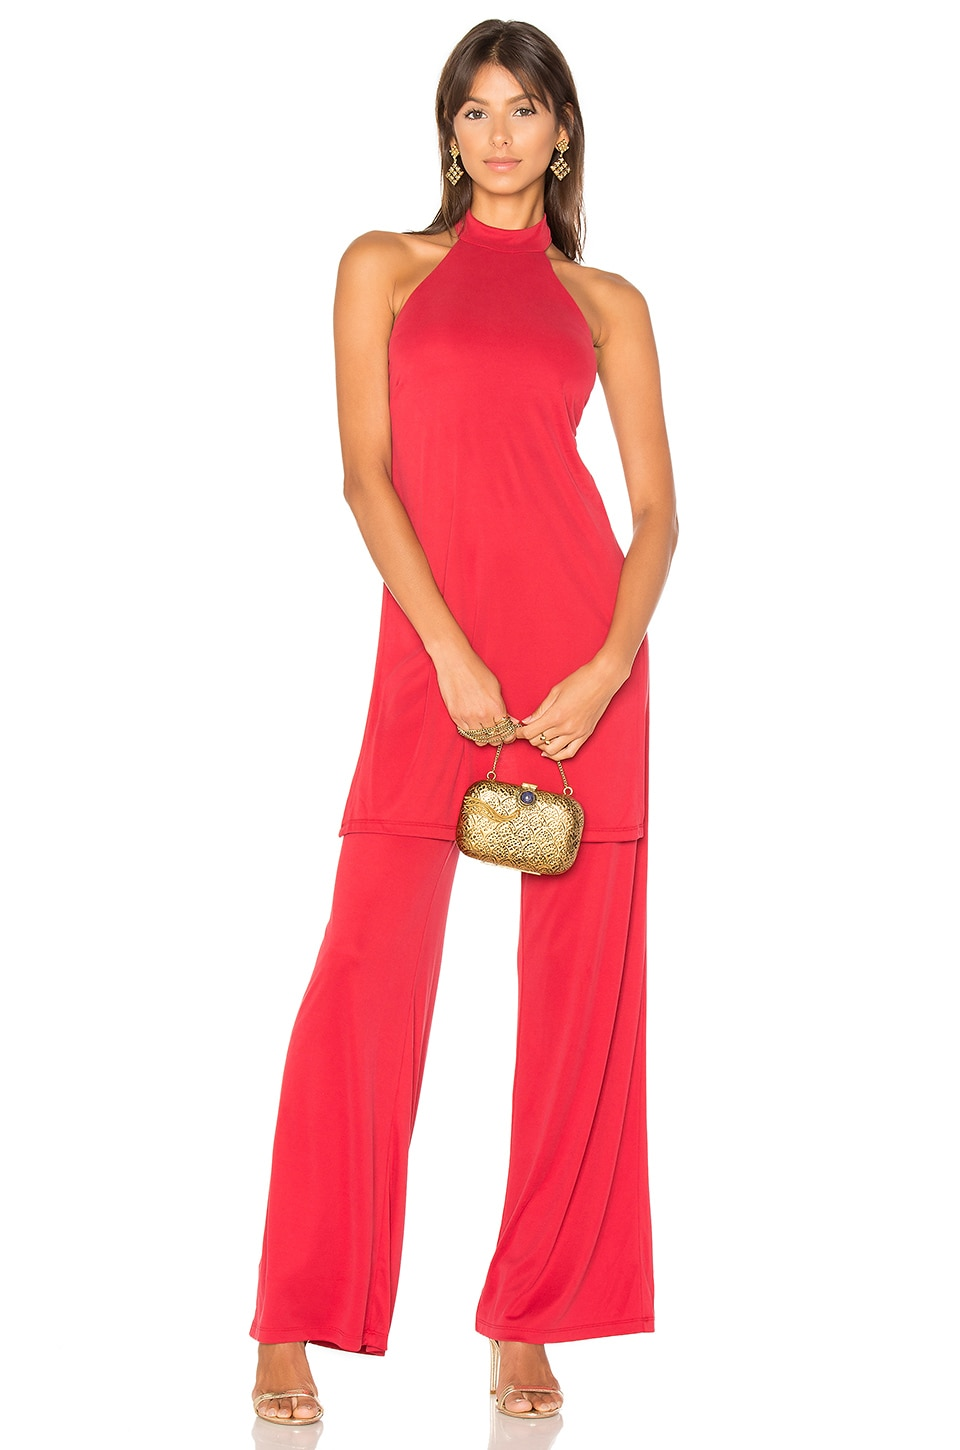 x REVOLVE Justine Jumpsuit by House Of Harlow 1960